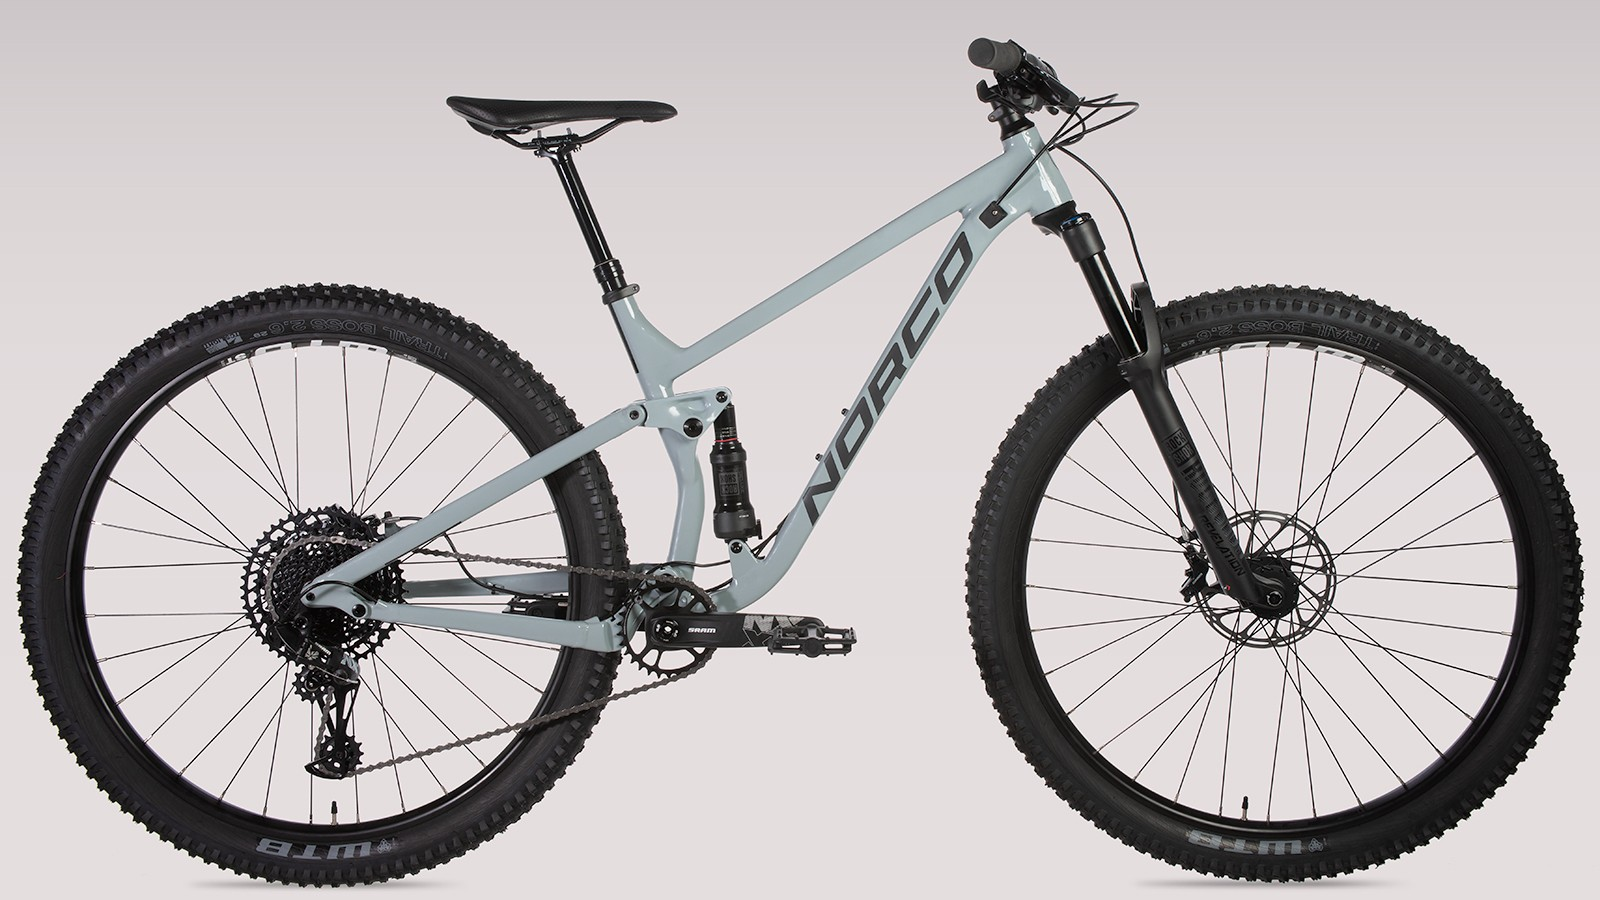 The 2019 Norco Fluid FS1